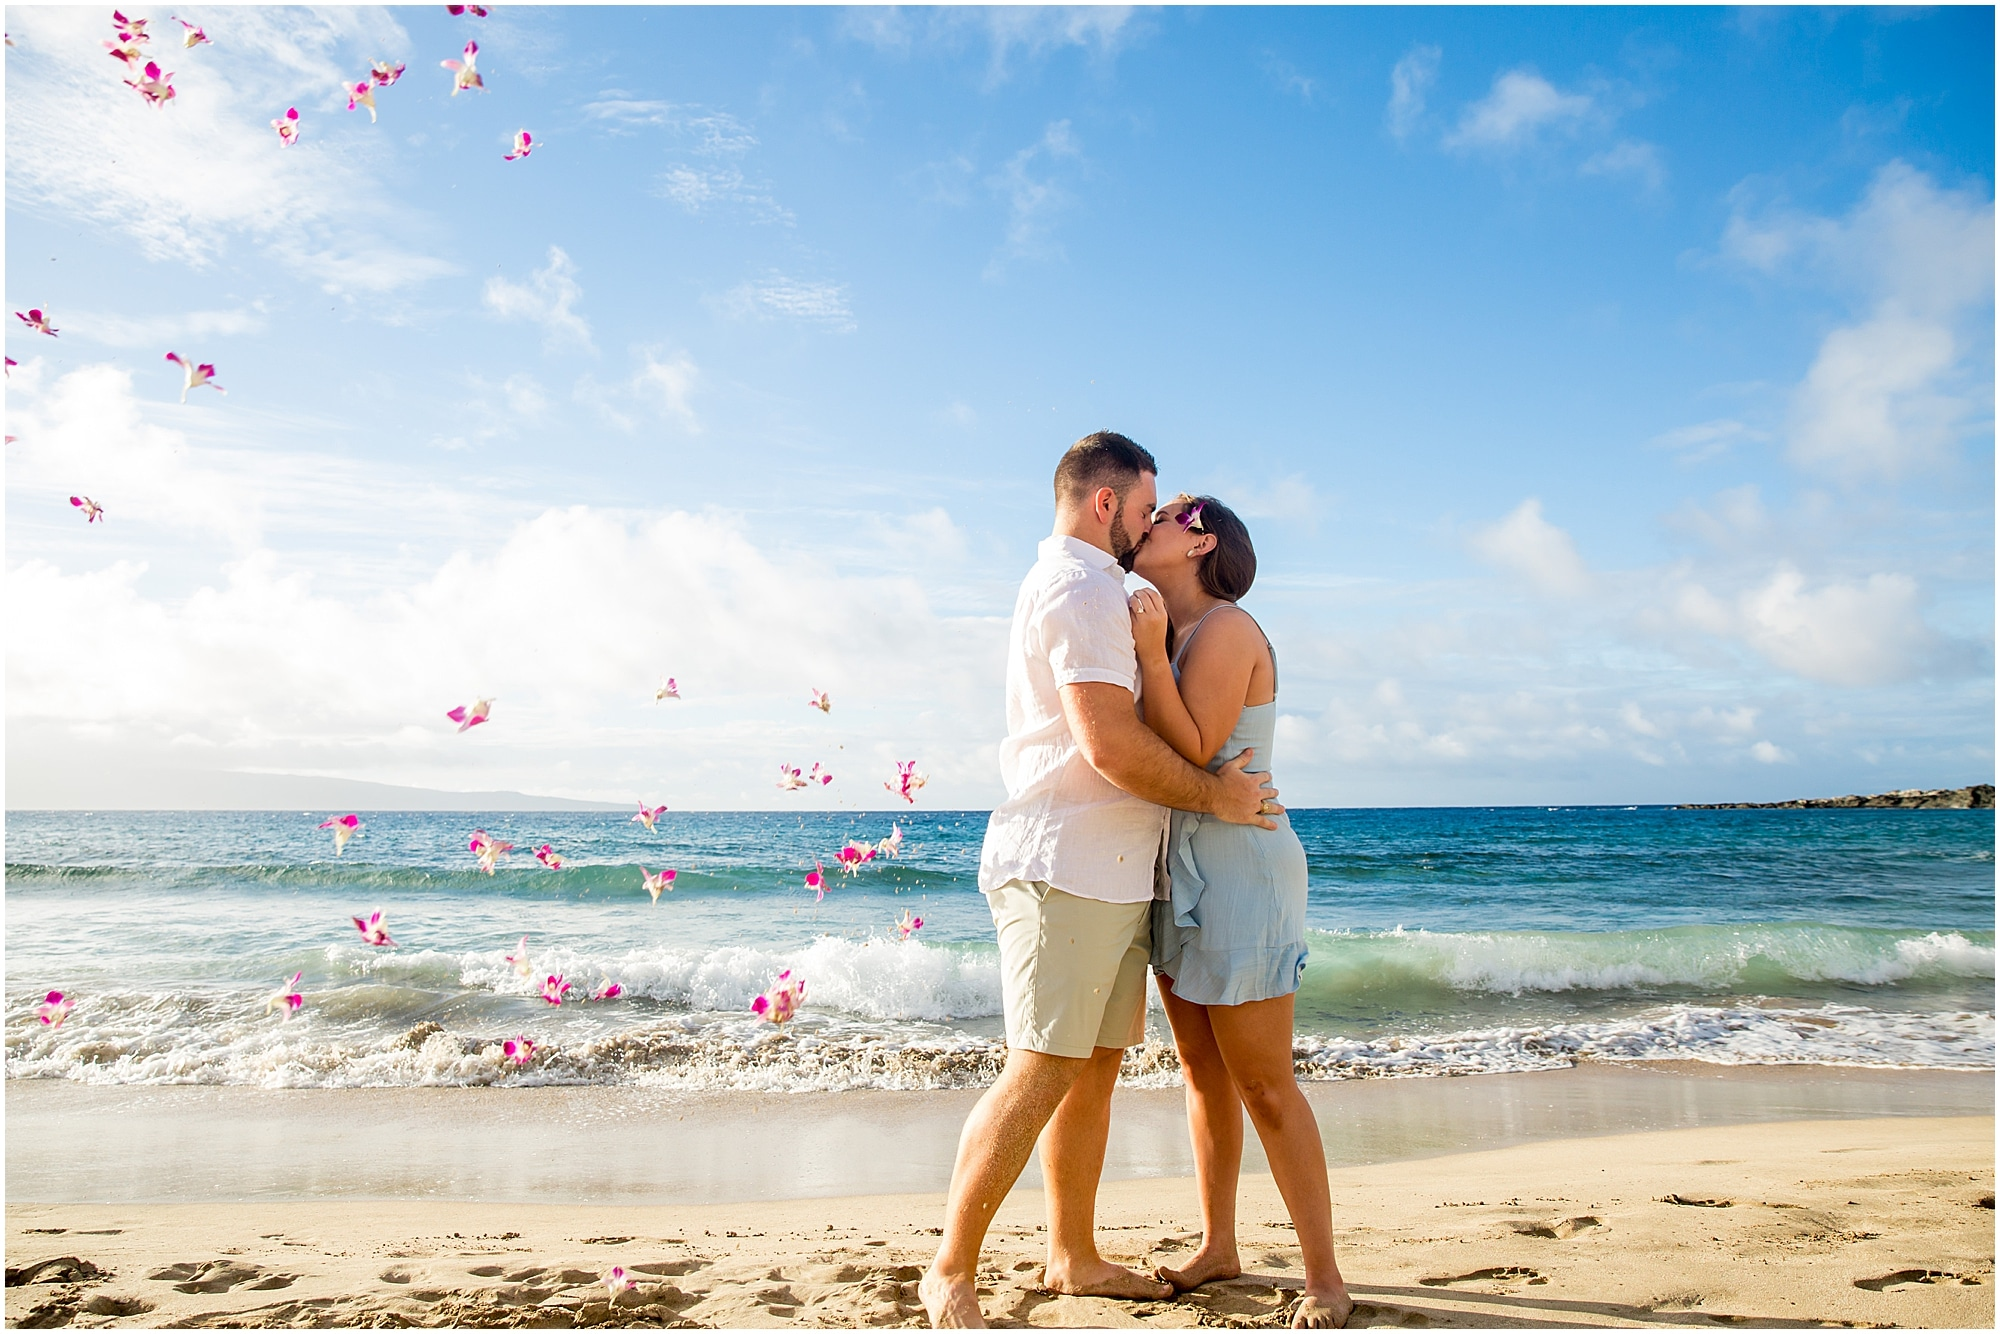 Being showered with flowers during Maui engagement session